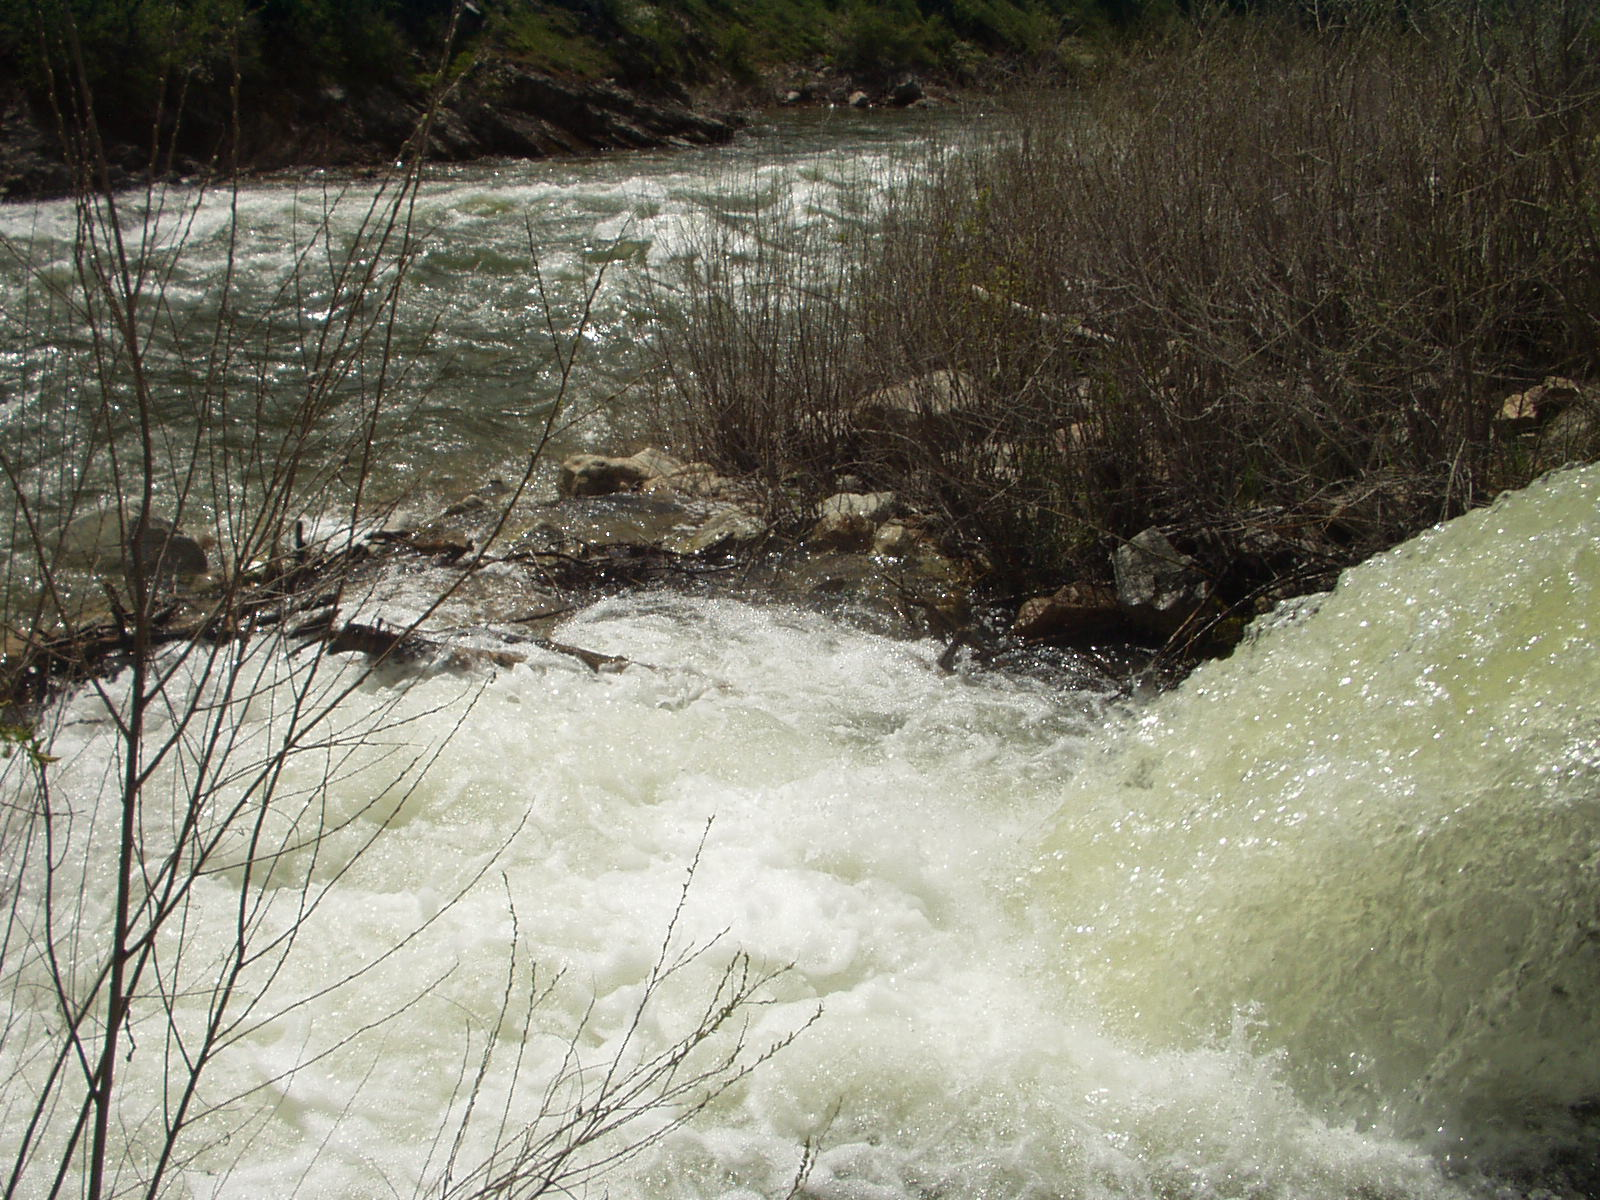 Boise NF - Water Flowing over a Culvert